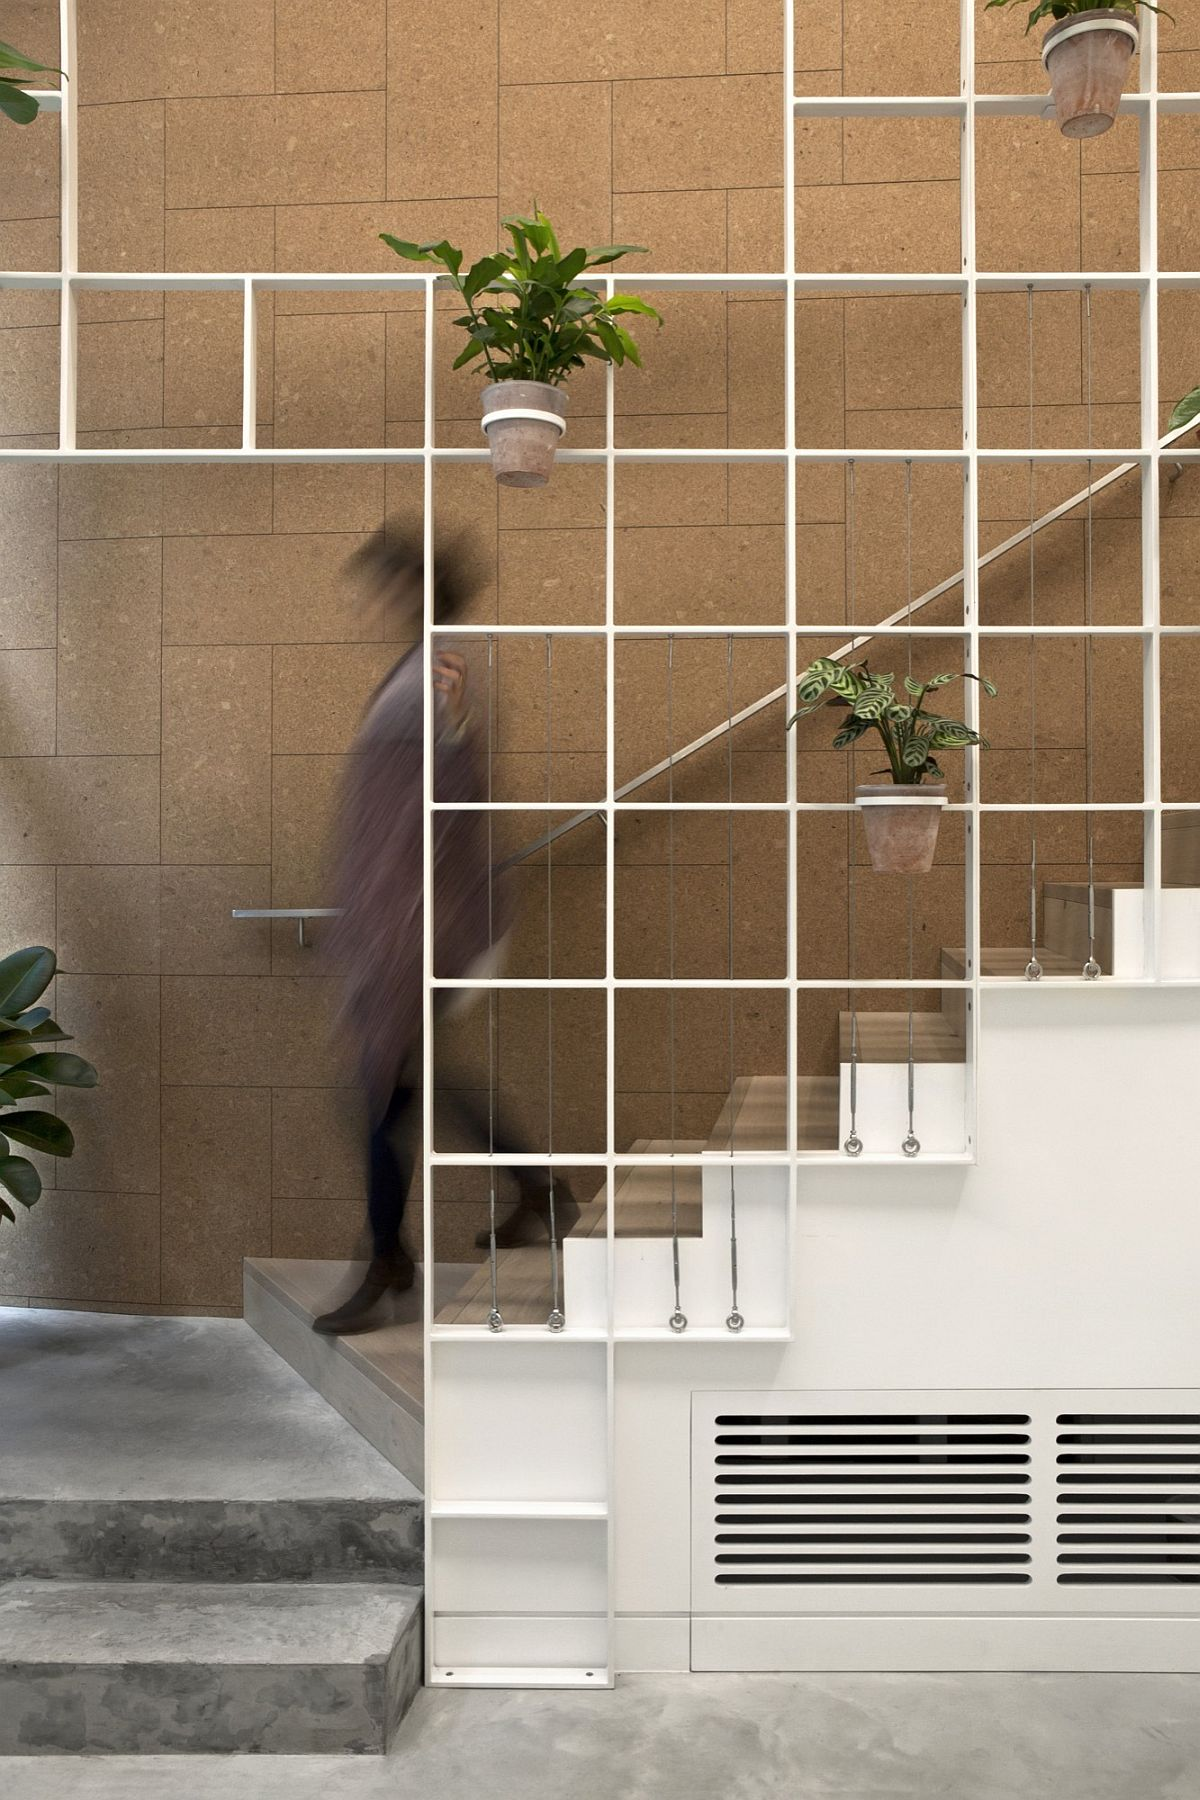 White metal grid holds plants, flowers and herbs